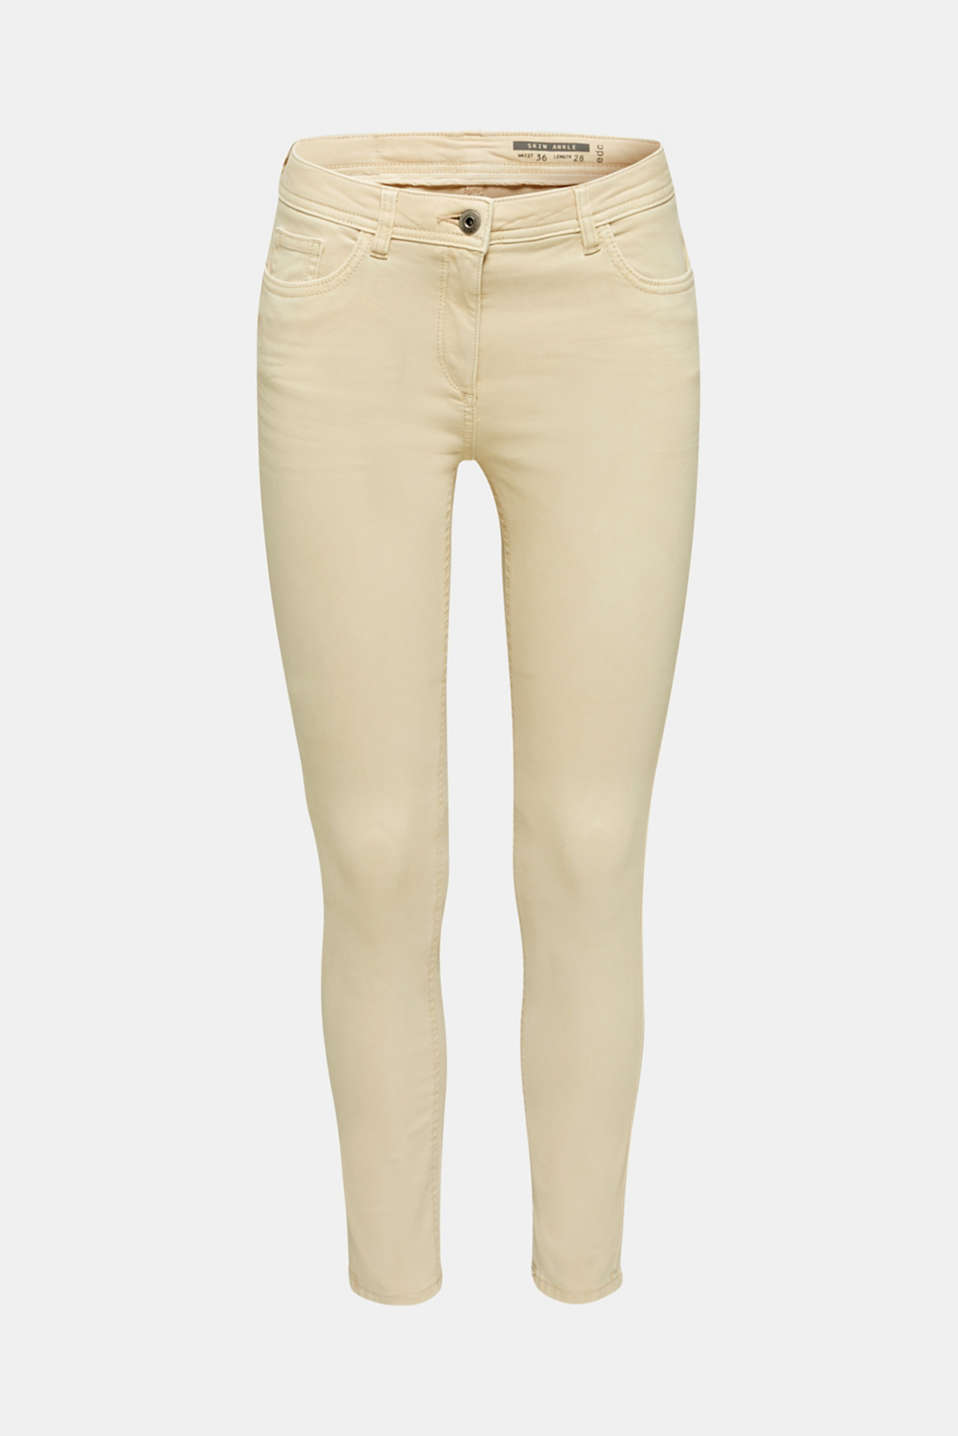 Ankle-length trousers in a garment-washed finish with organic cotton, SAND, detail image number 7